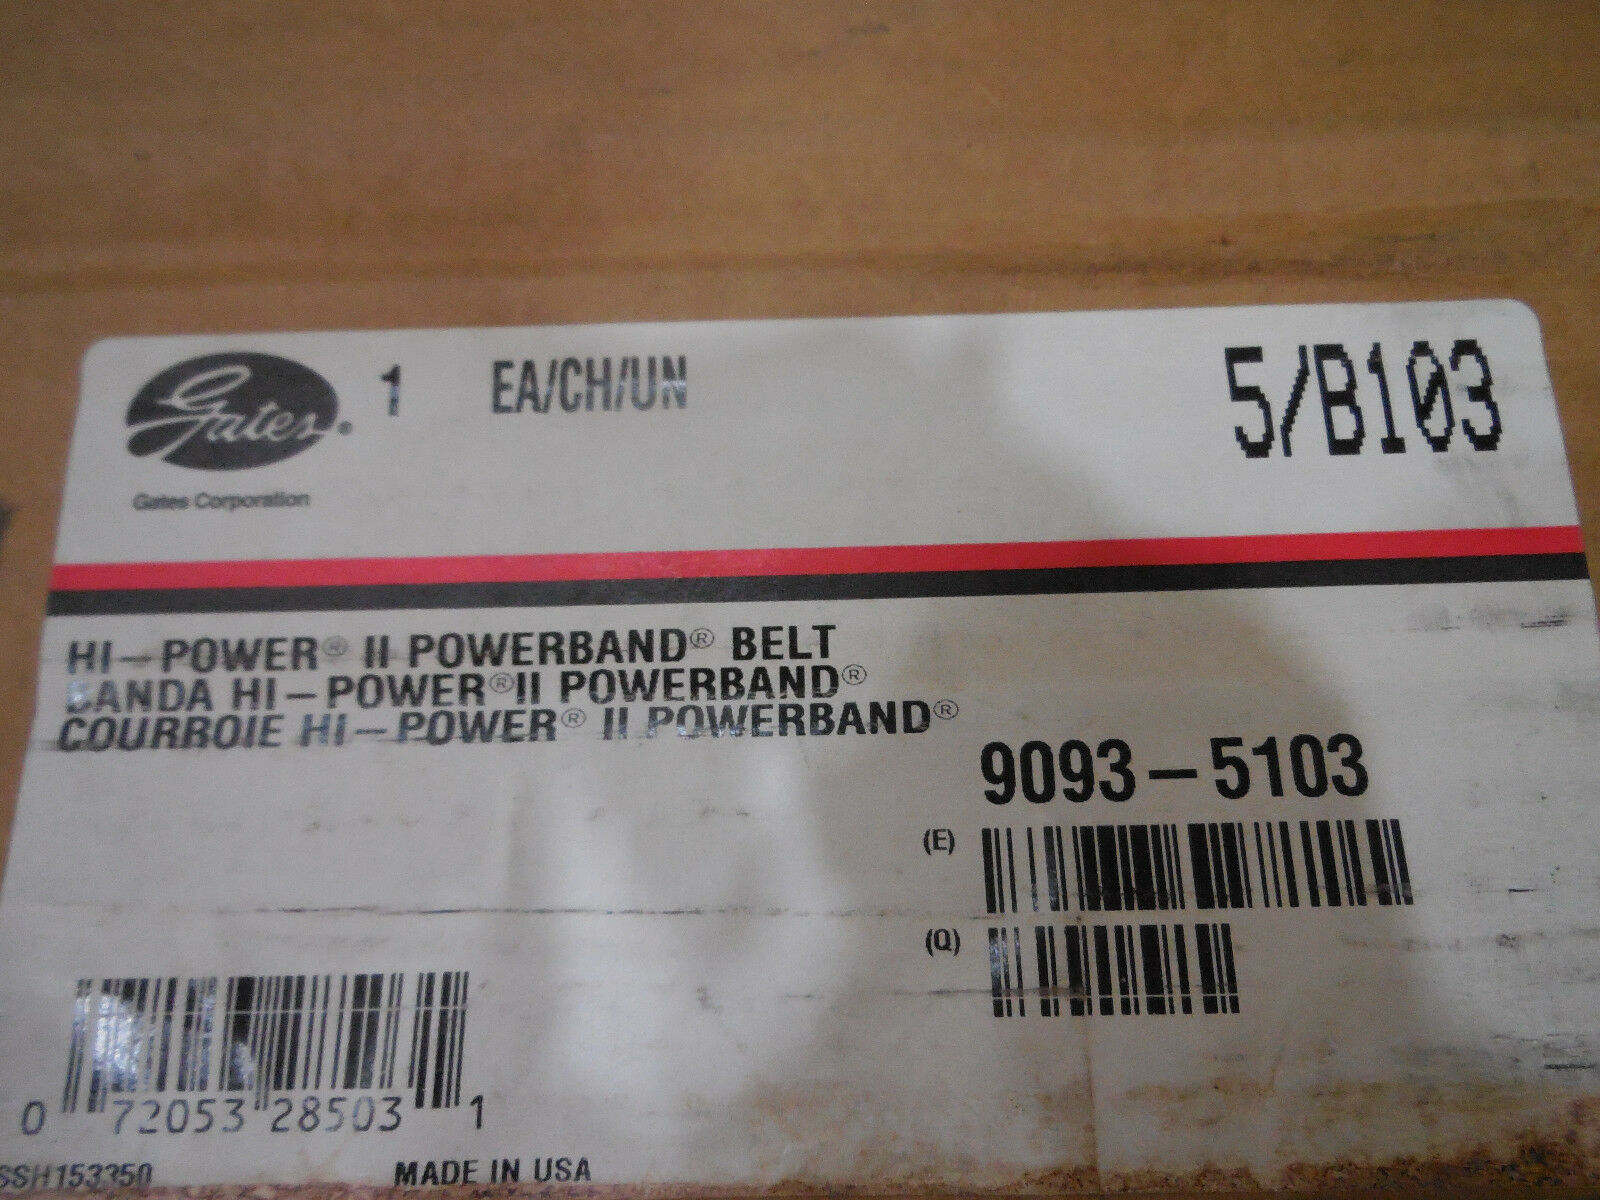 NEW GATES 5-B103 POWERBAND BELT 5B103